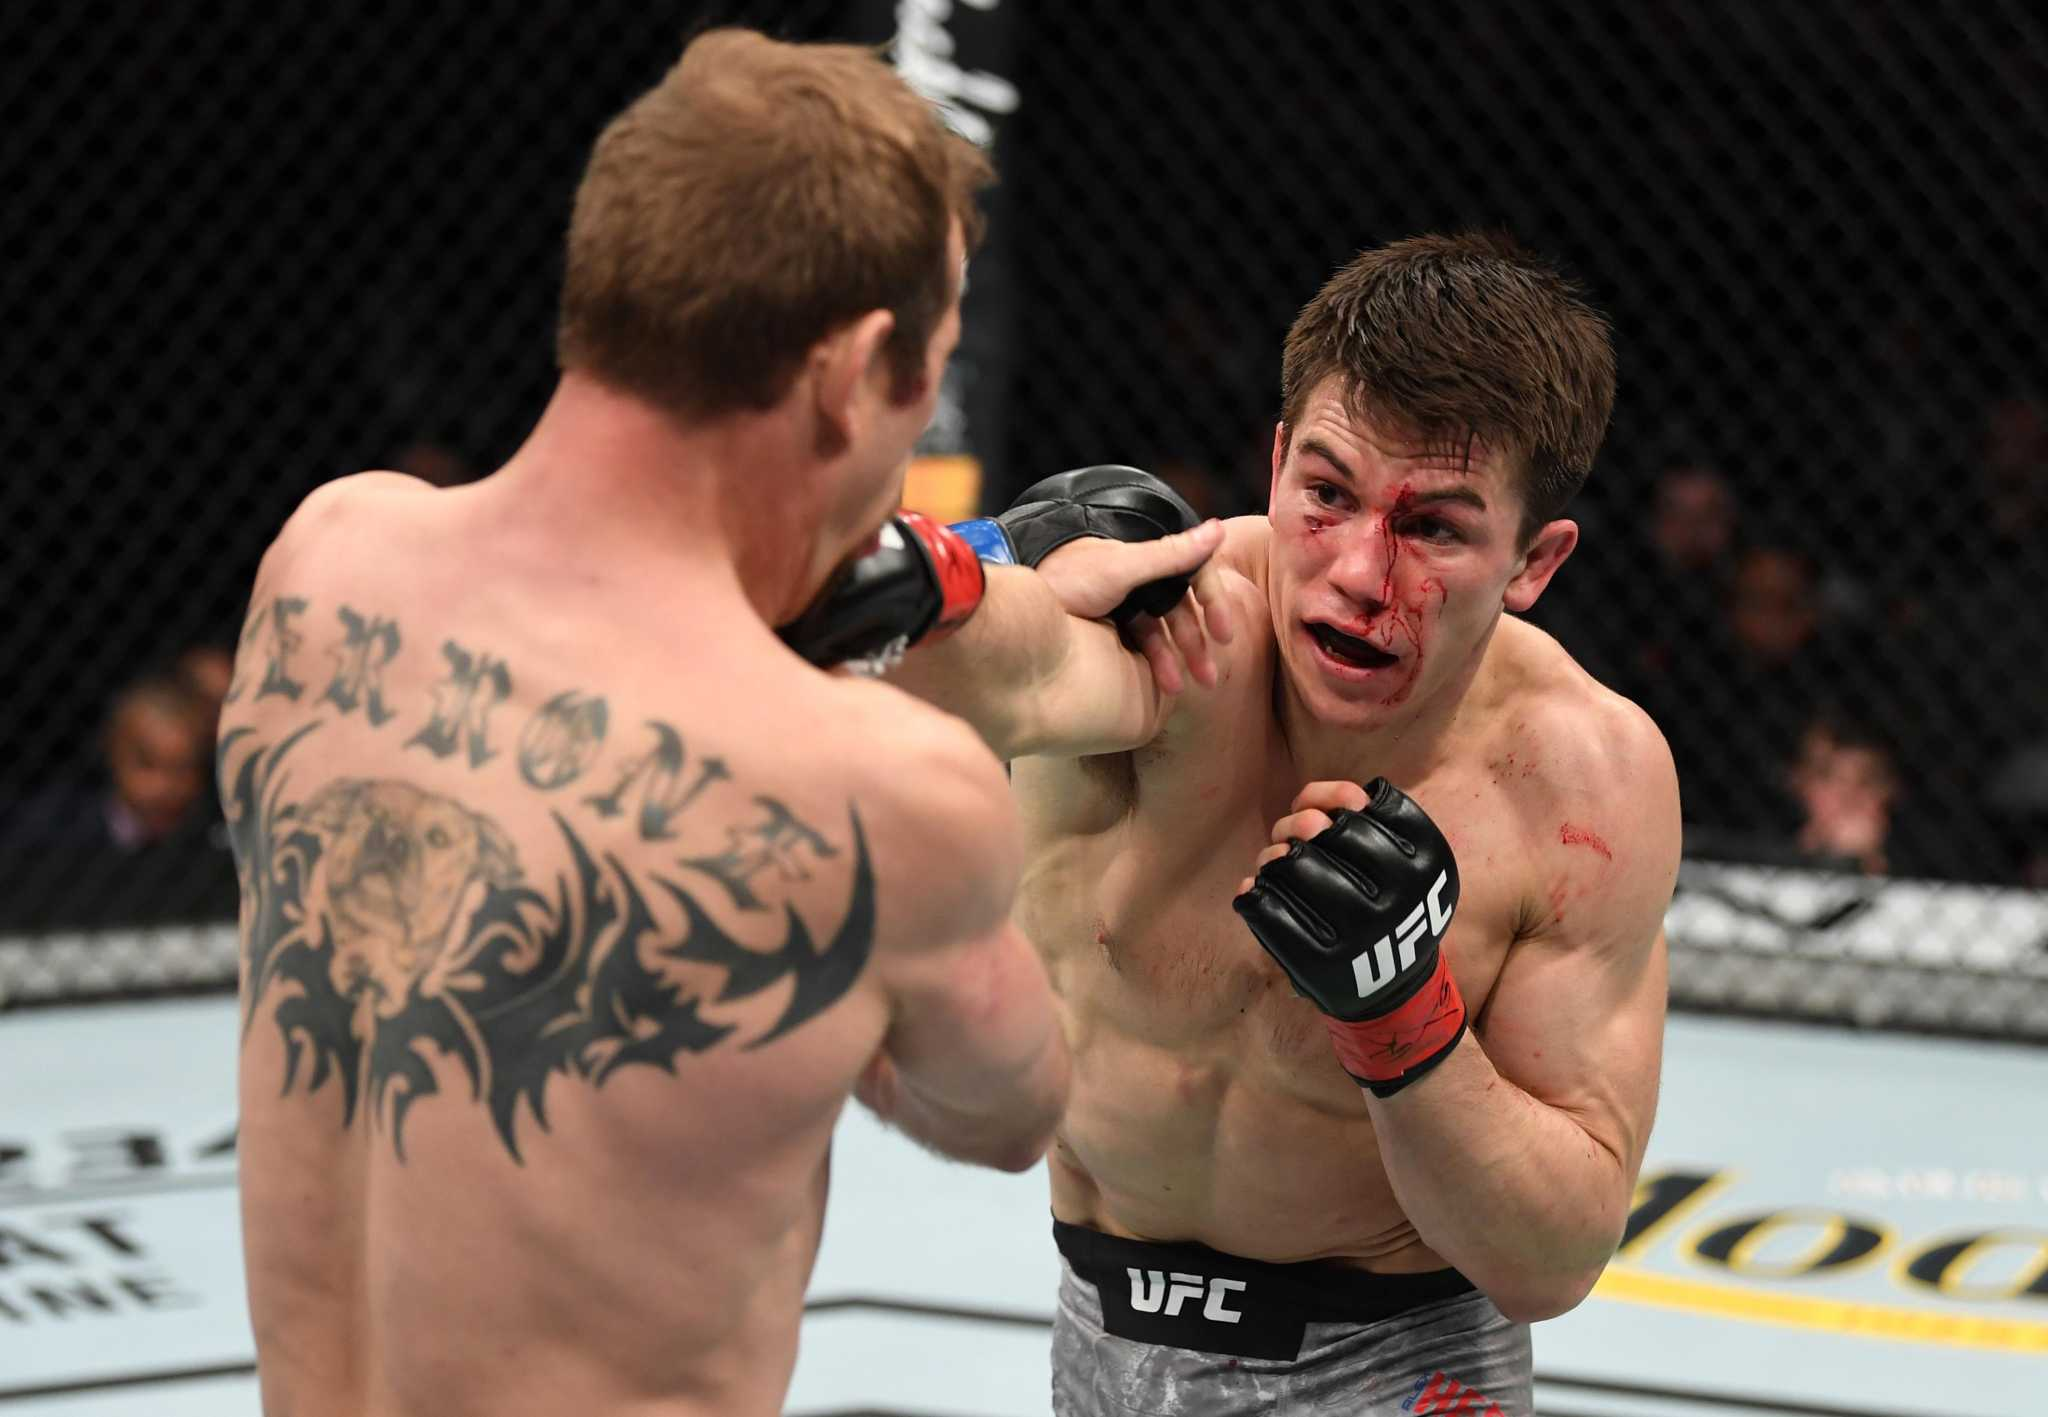 UFC set for return to San Antonio after five years